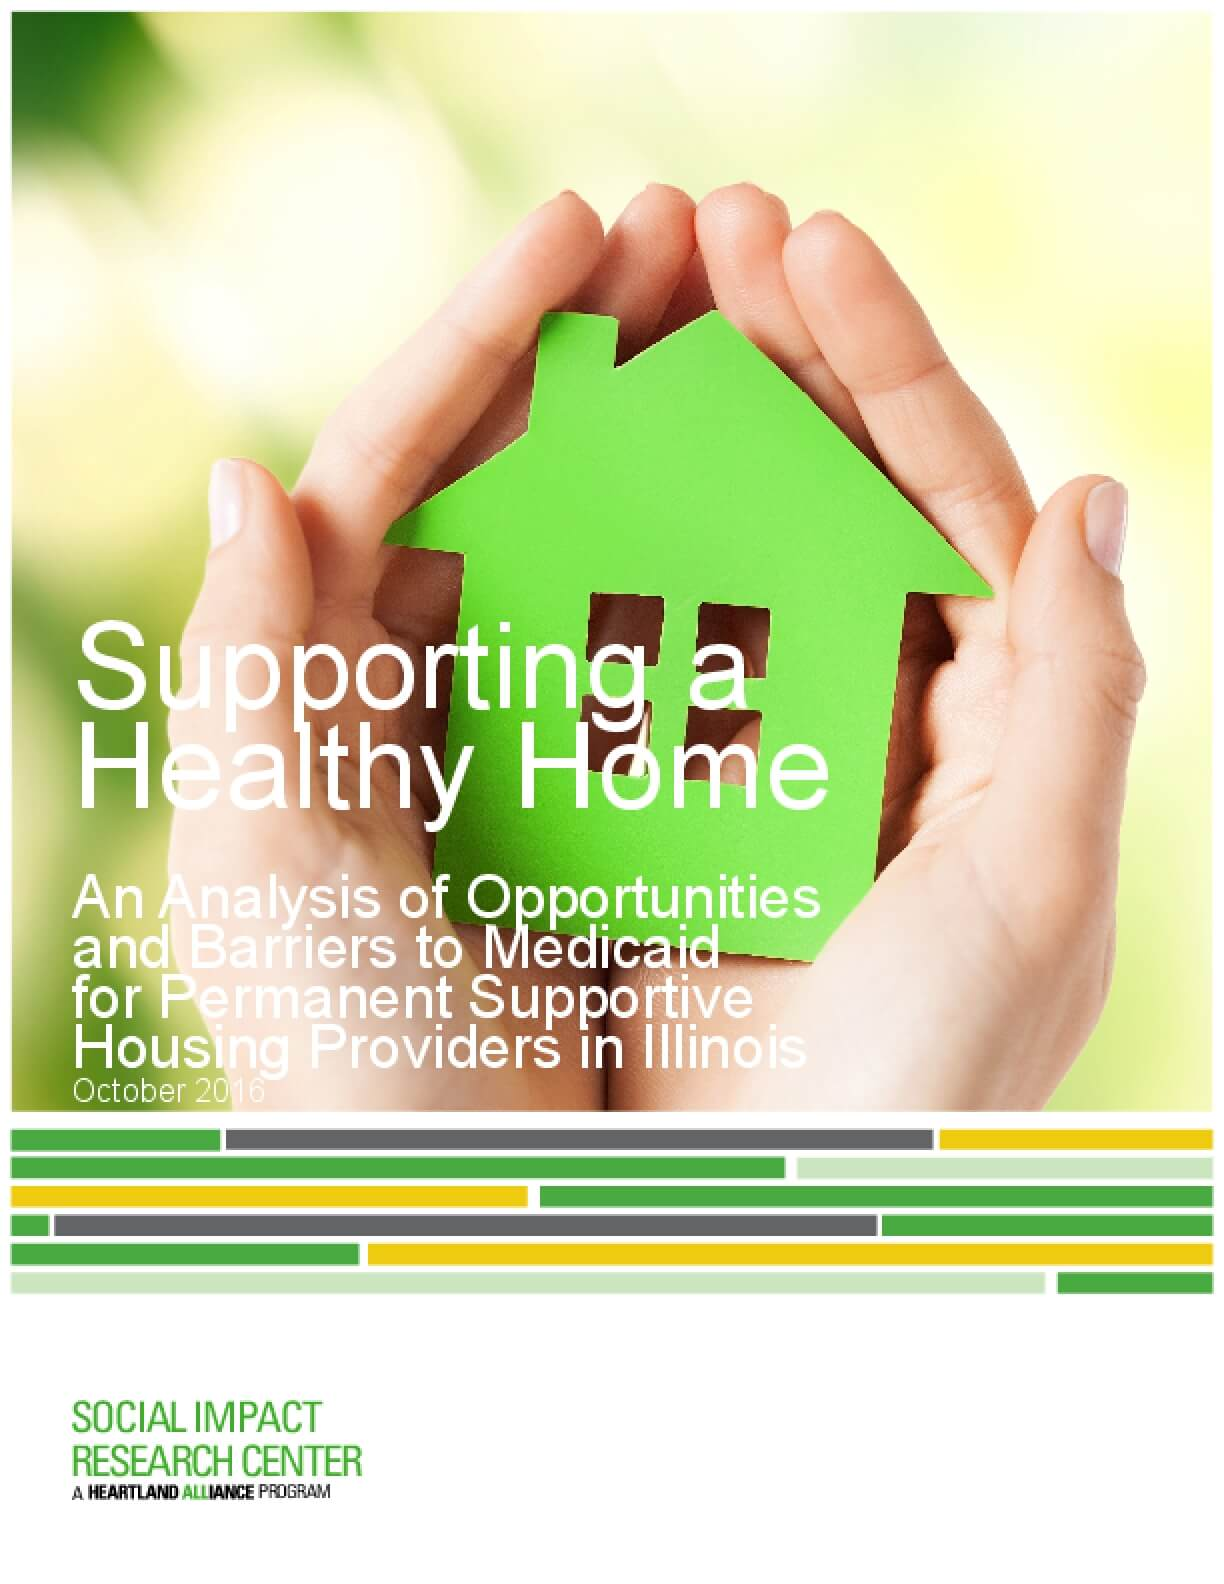 Supporting a Healthy Home: An Analysis of Opportunities and Barriers to Medicaid for Permanent Supportive Housing Providers in Illinois